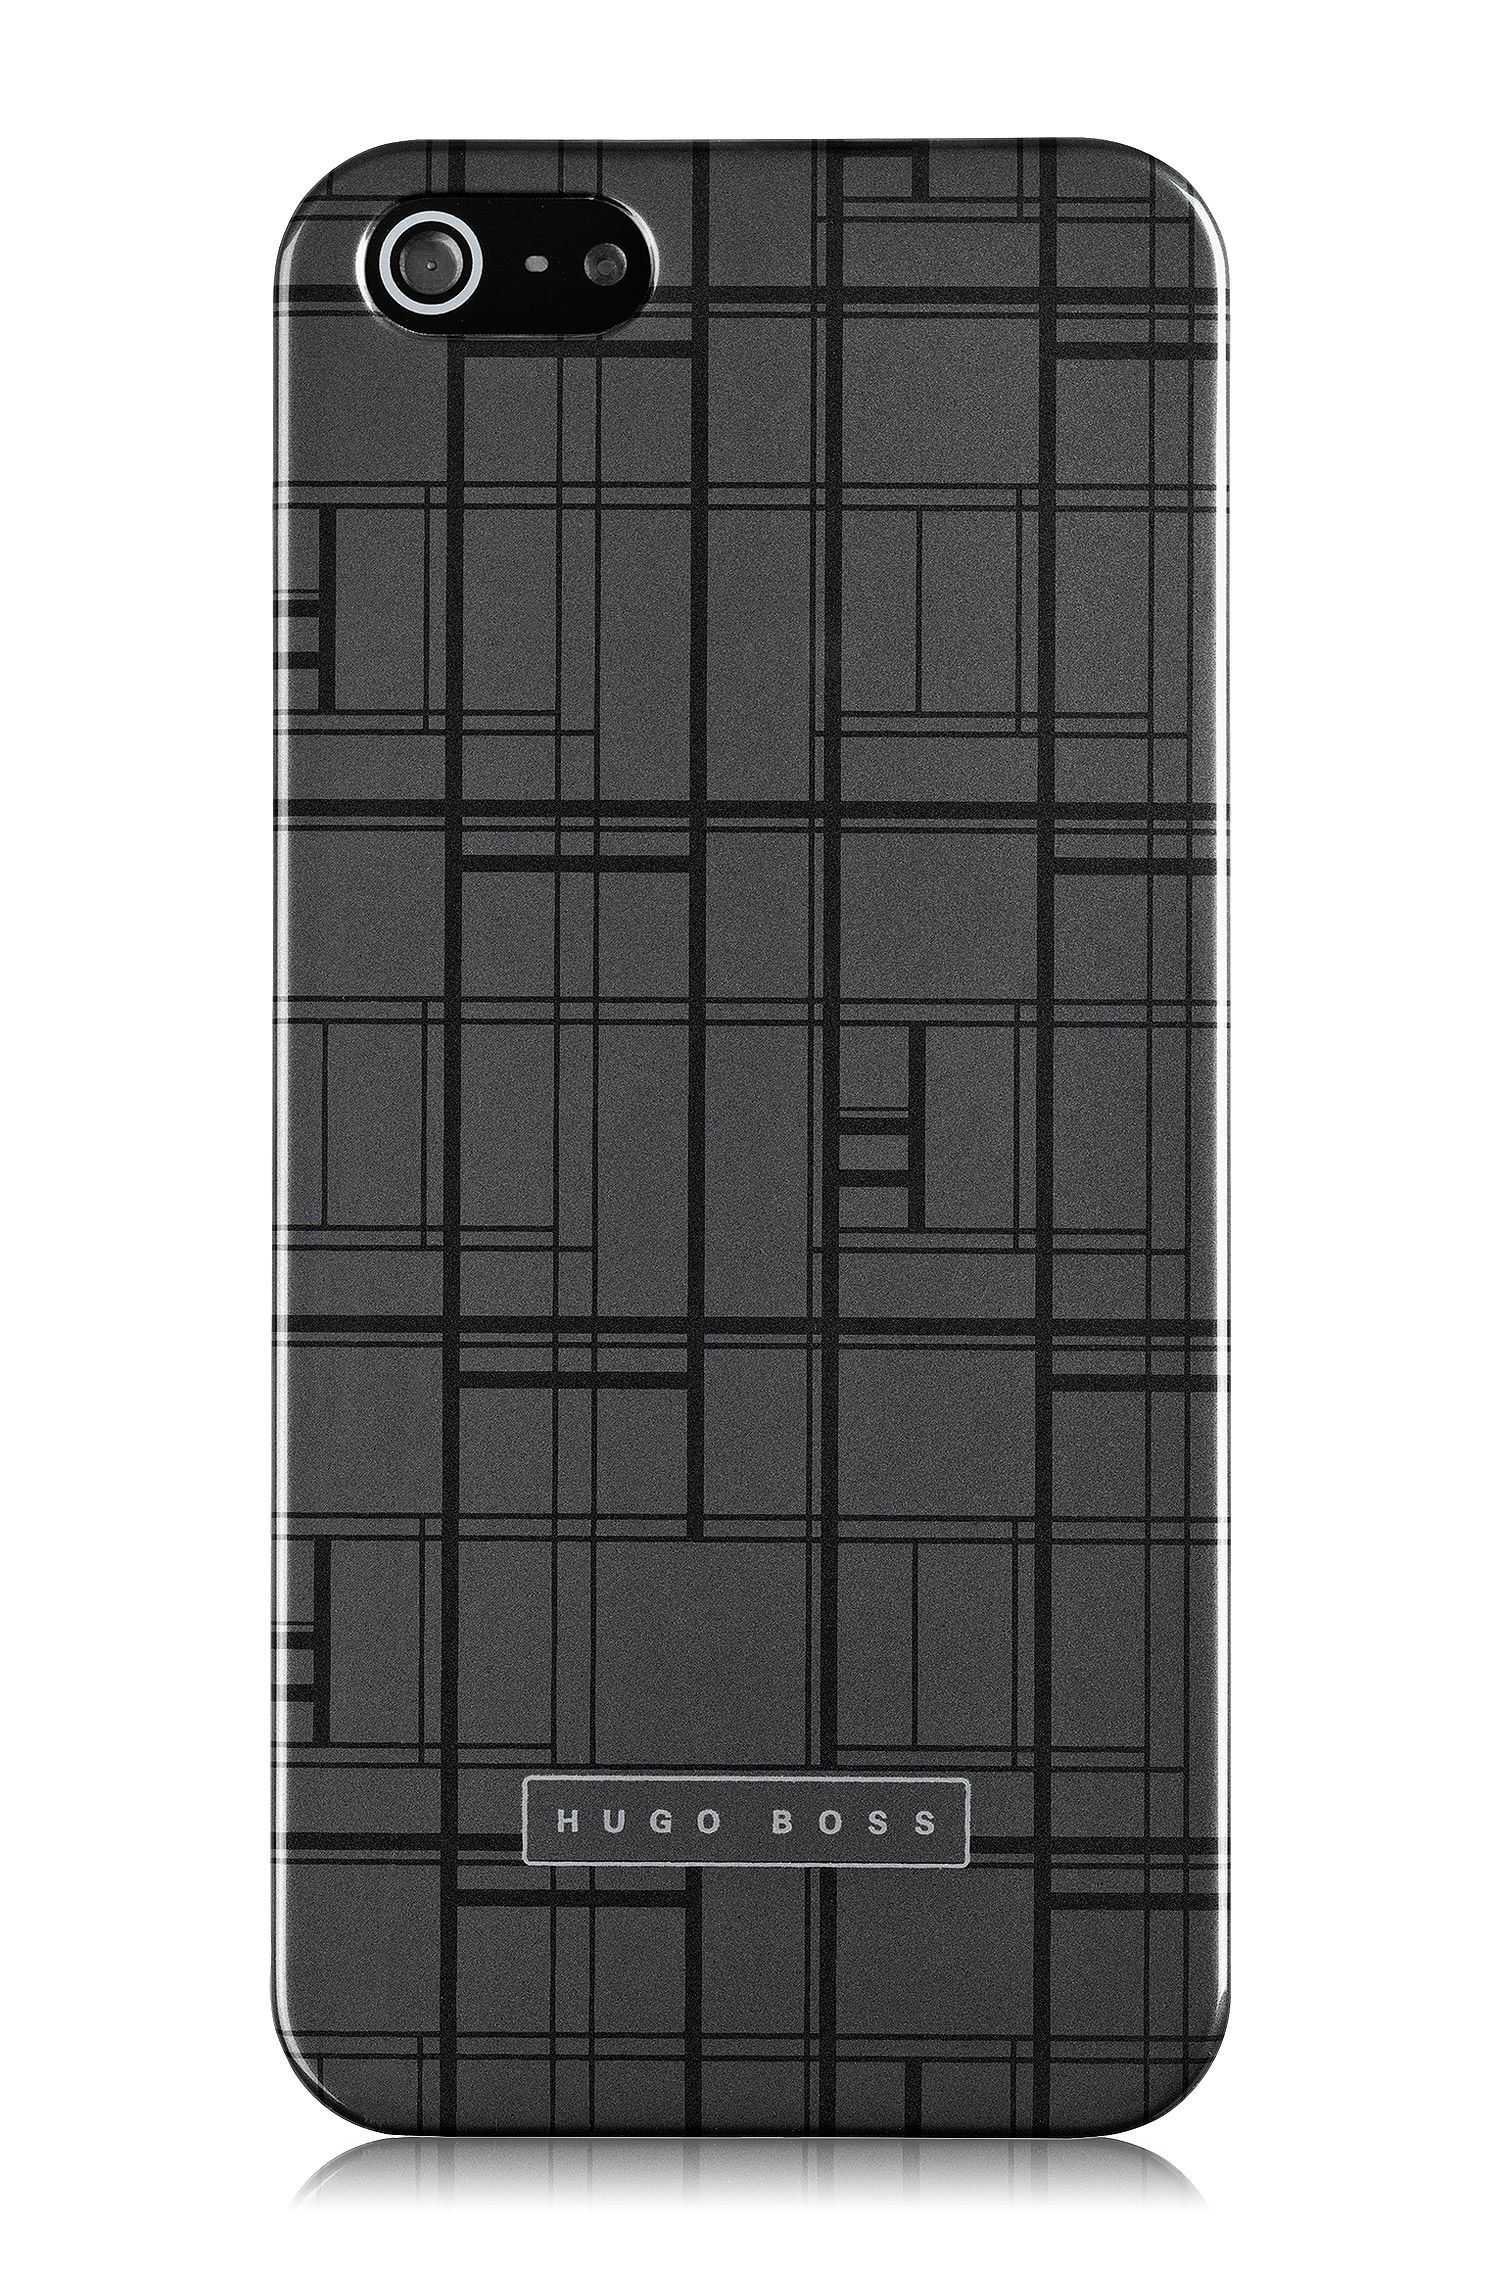 Hard Cover ´Catwalk IP5 Grey` für iPhone 5/5s